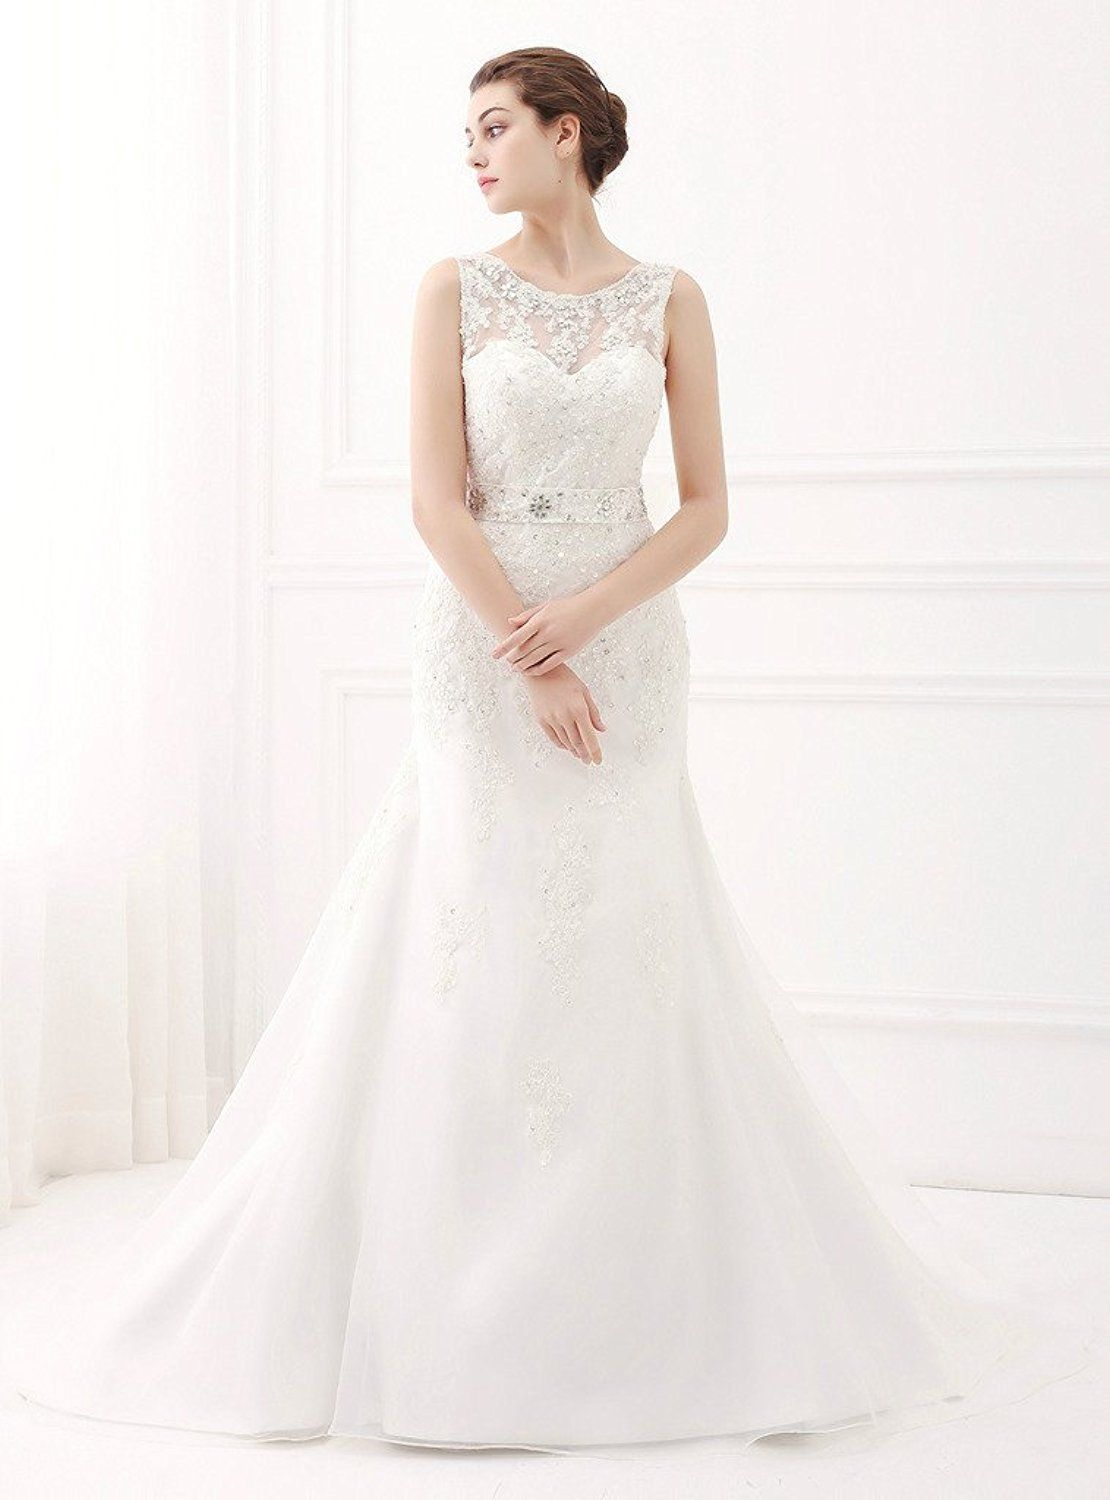 d9533fe64dff ScelleBridal Latest Sleeveless Lace Appliques Mermaid Bridal Dress Wedding  Gown at Amazon Women's Clothing store: